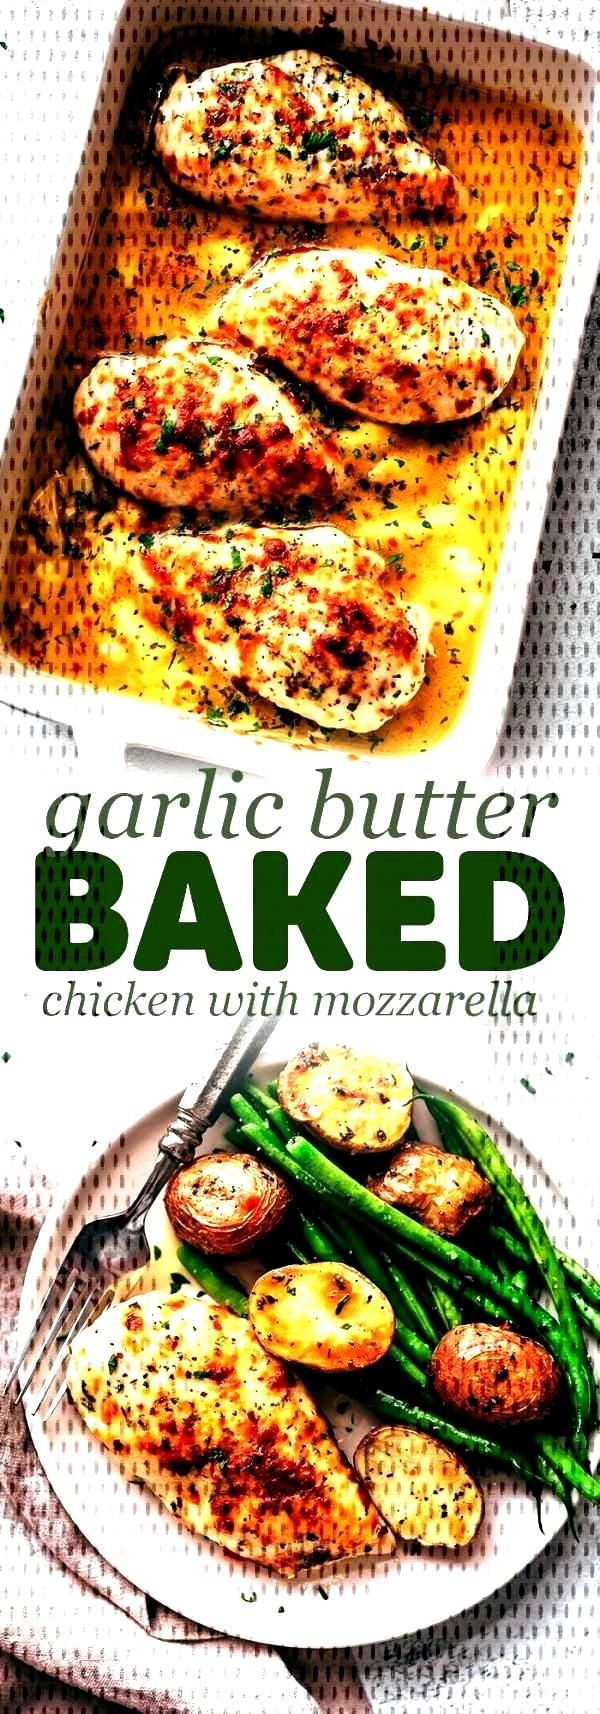 Baked Garlic Butter Chicken with Mozzarella - learn how to bake chicken breasts in a simple garlic